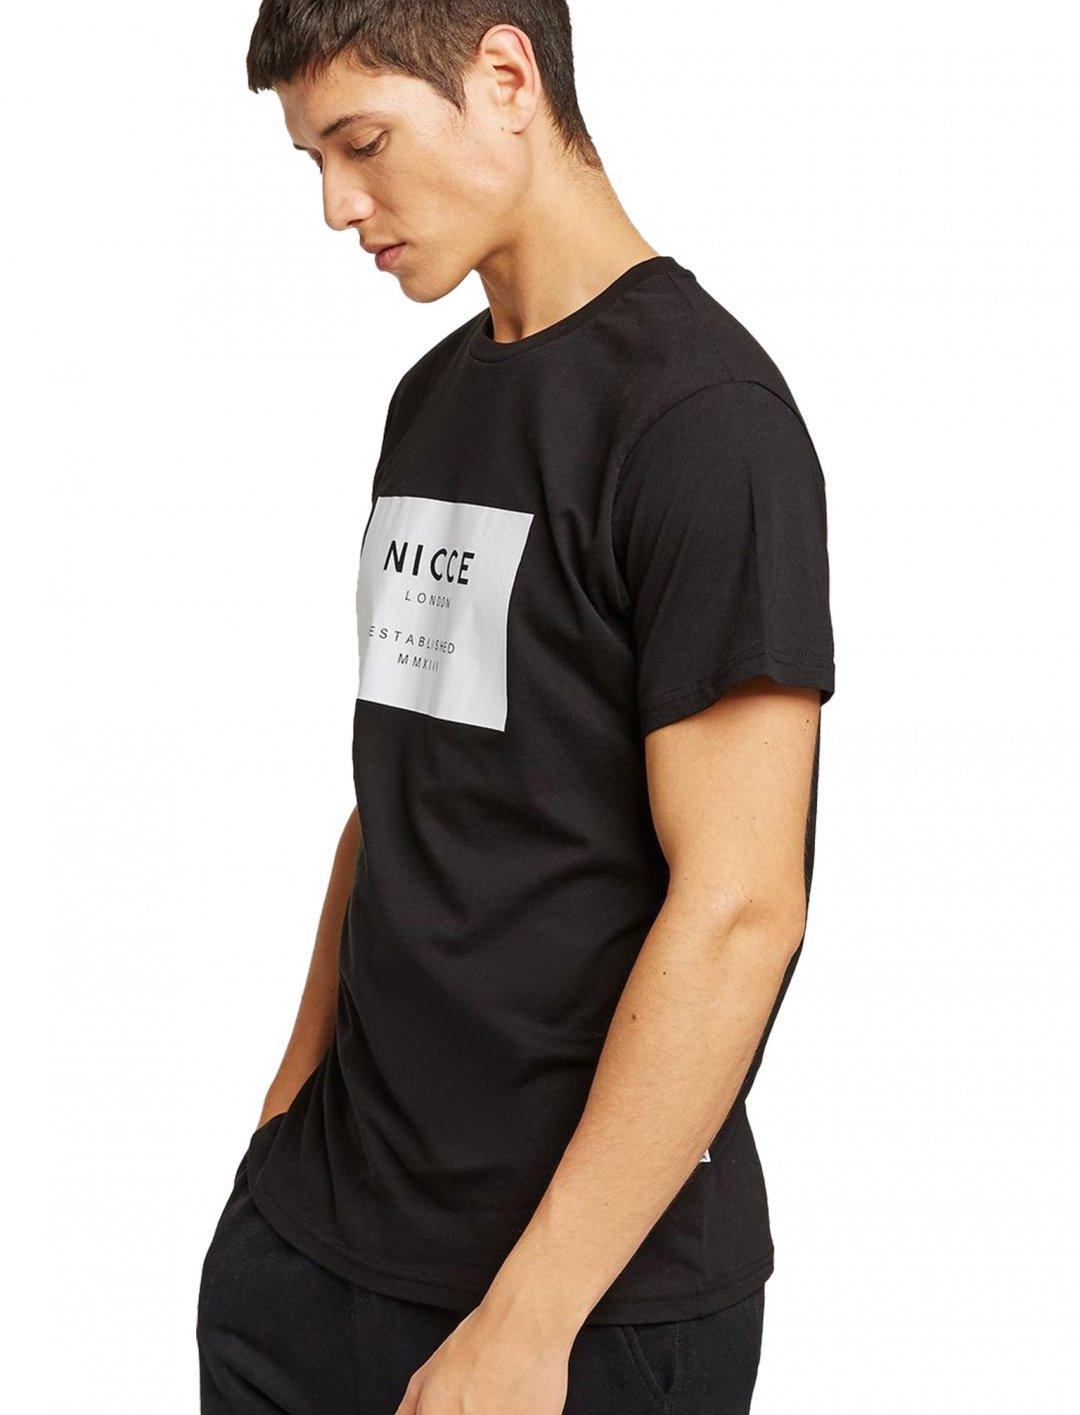 "Nicce T-Shirt {""id"":5,""product_section_id"":1,""name"":""Clothing"",""order"":5} Nicce"